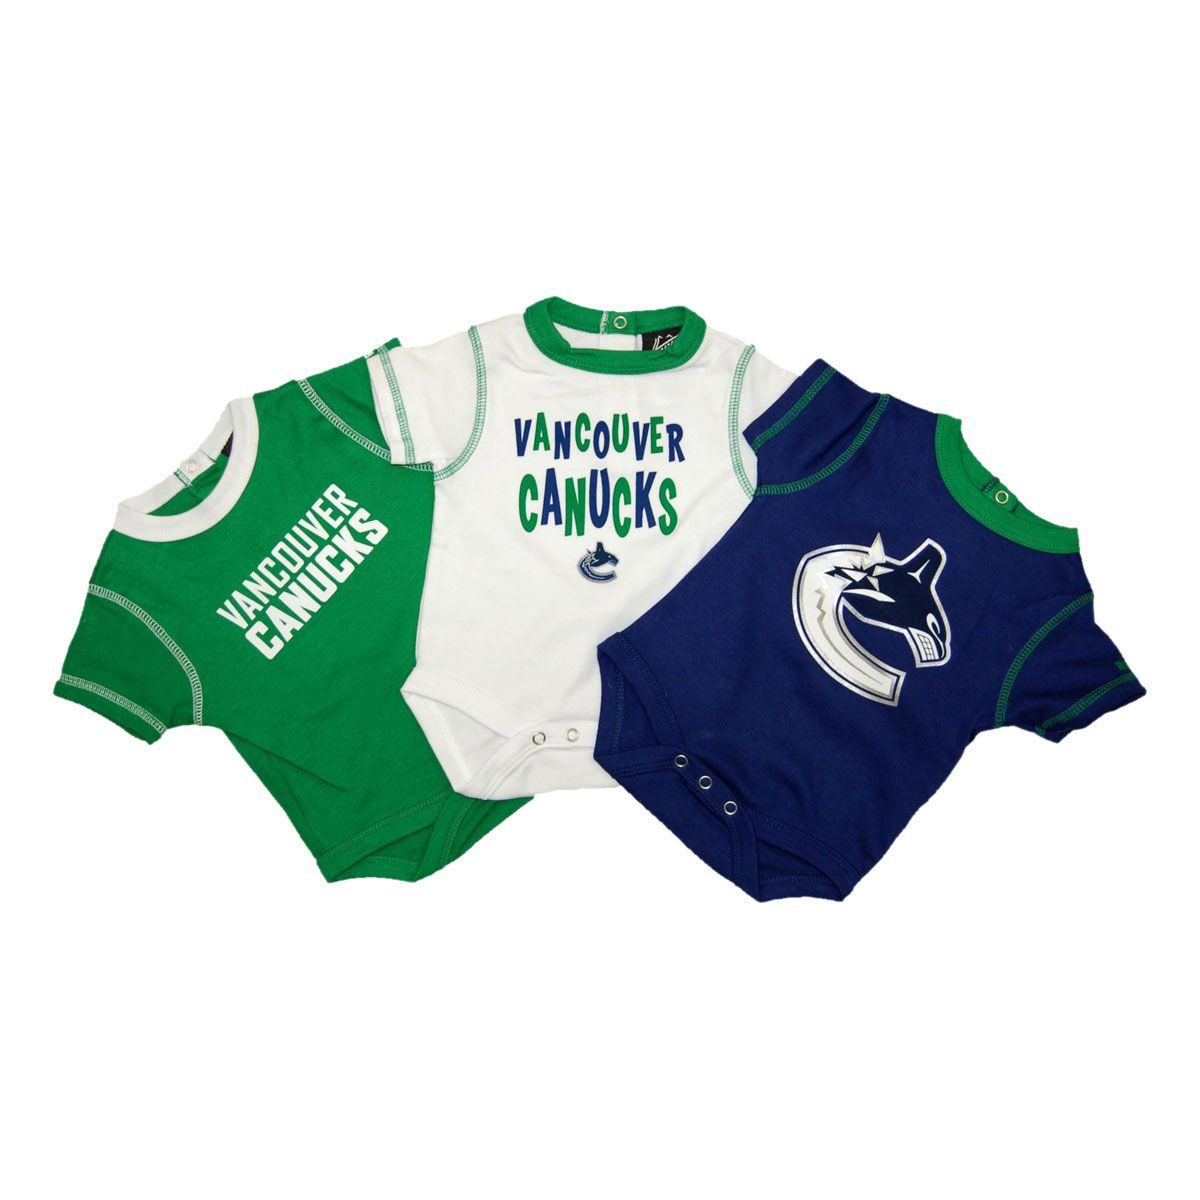 be61db3fe13 vancouver canucks baby jersey